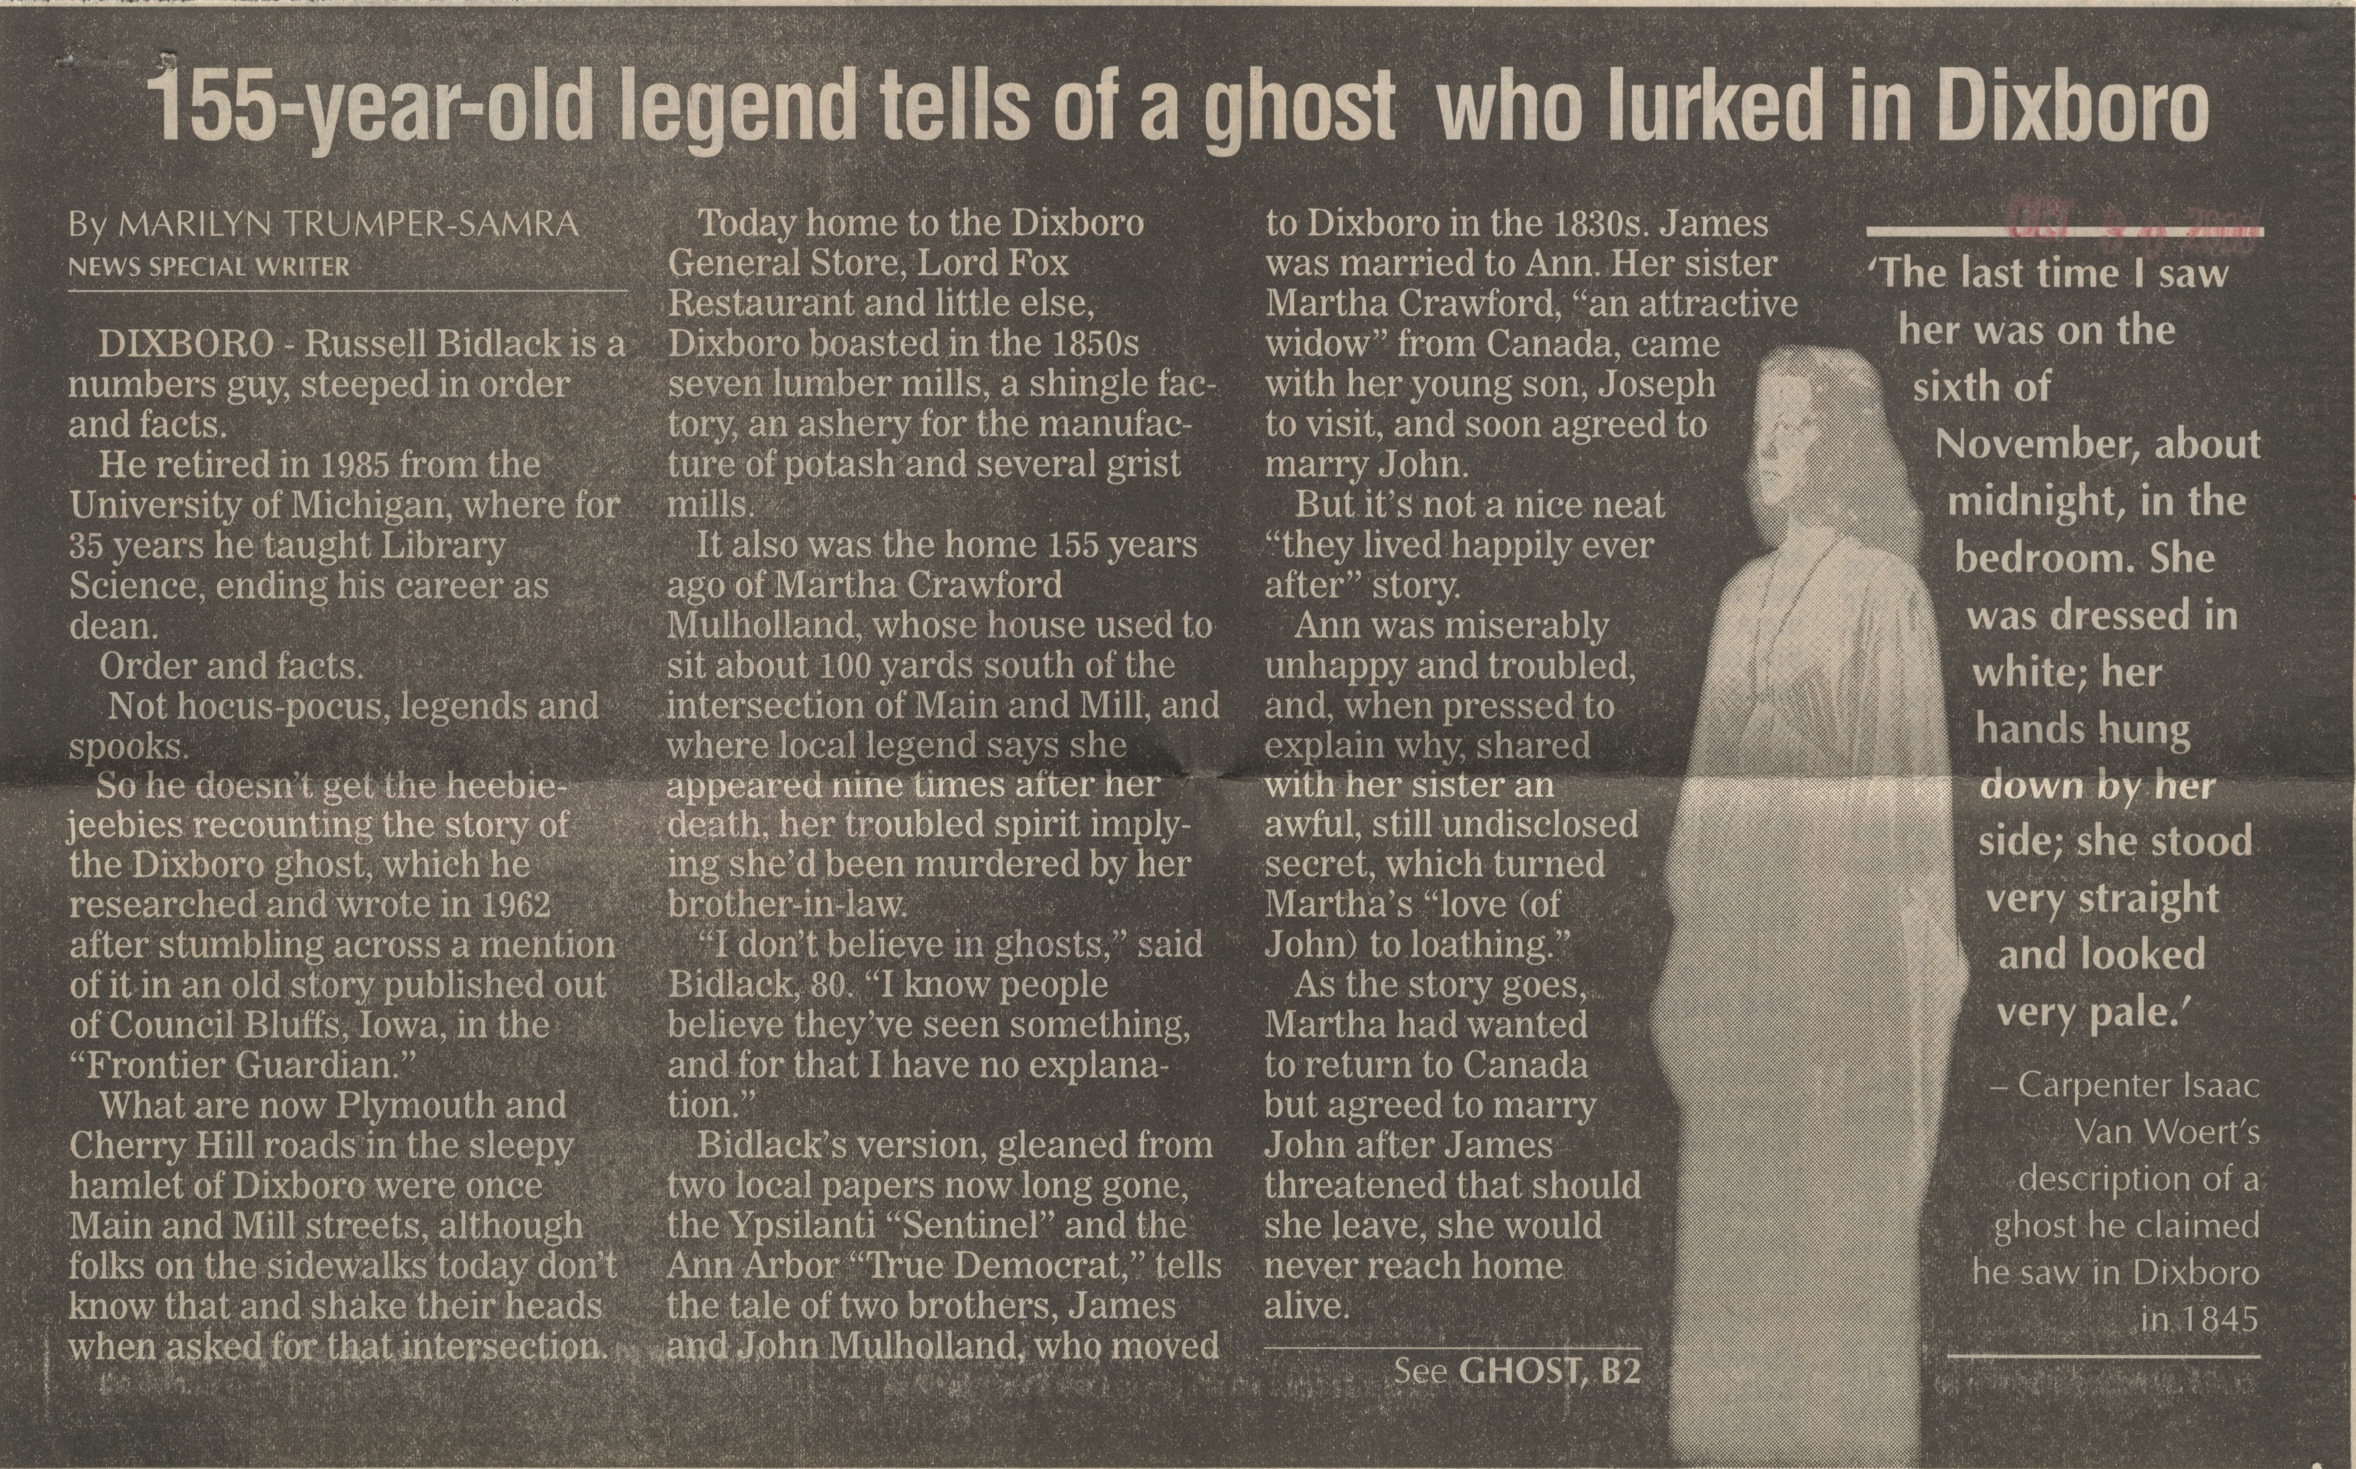 155-year-old legend tells of a ghost who lurked in Dixboro image